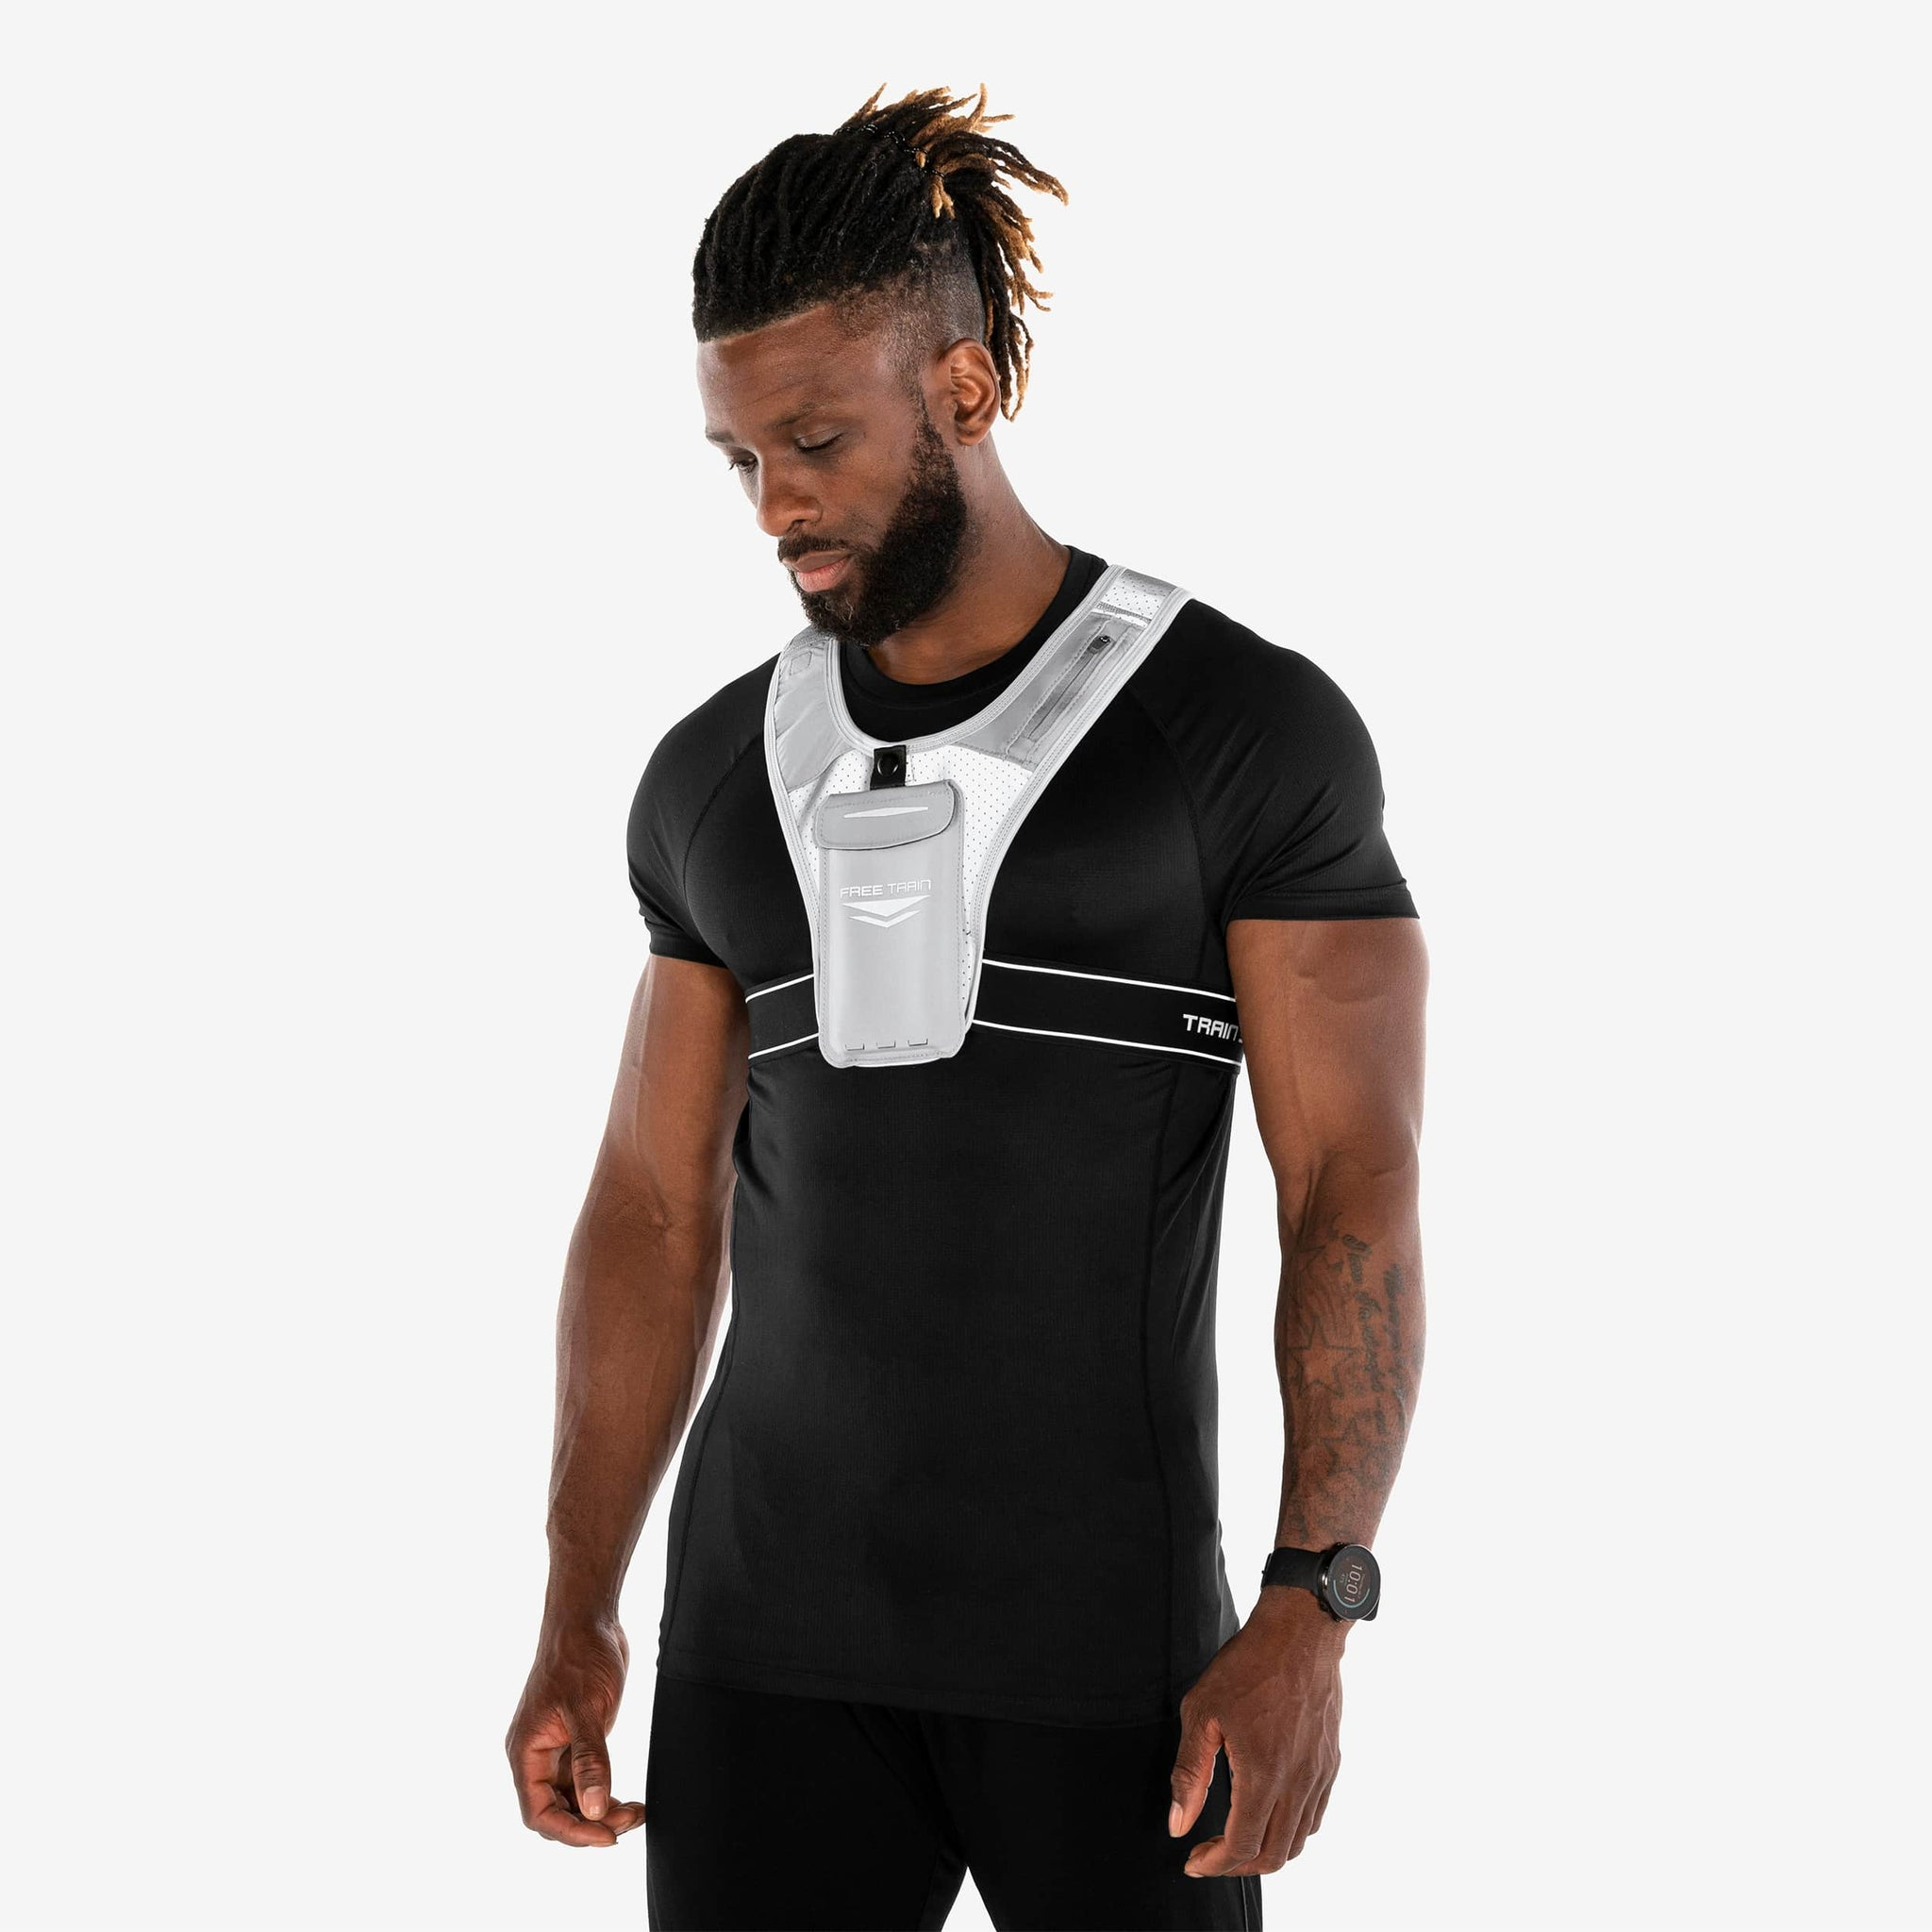 Running vest with pocket